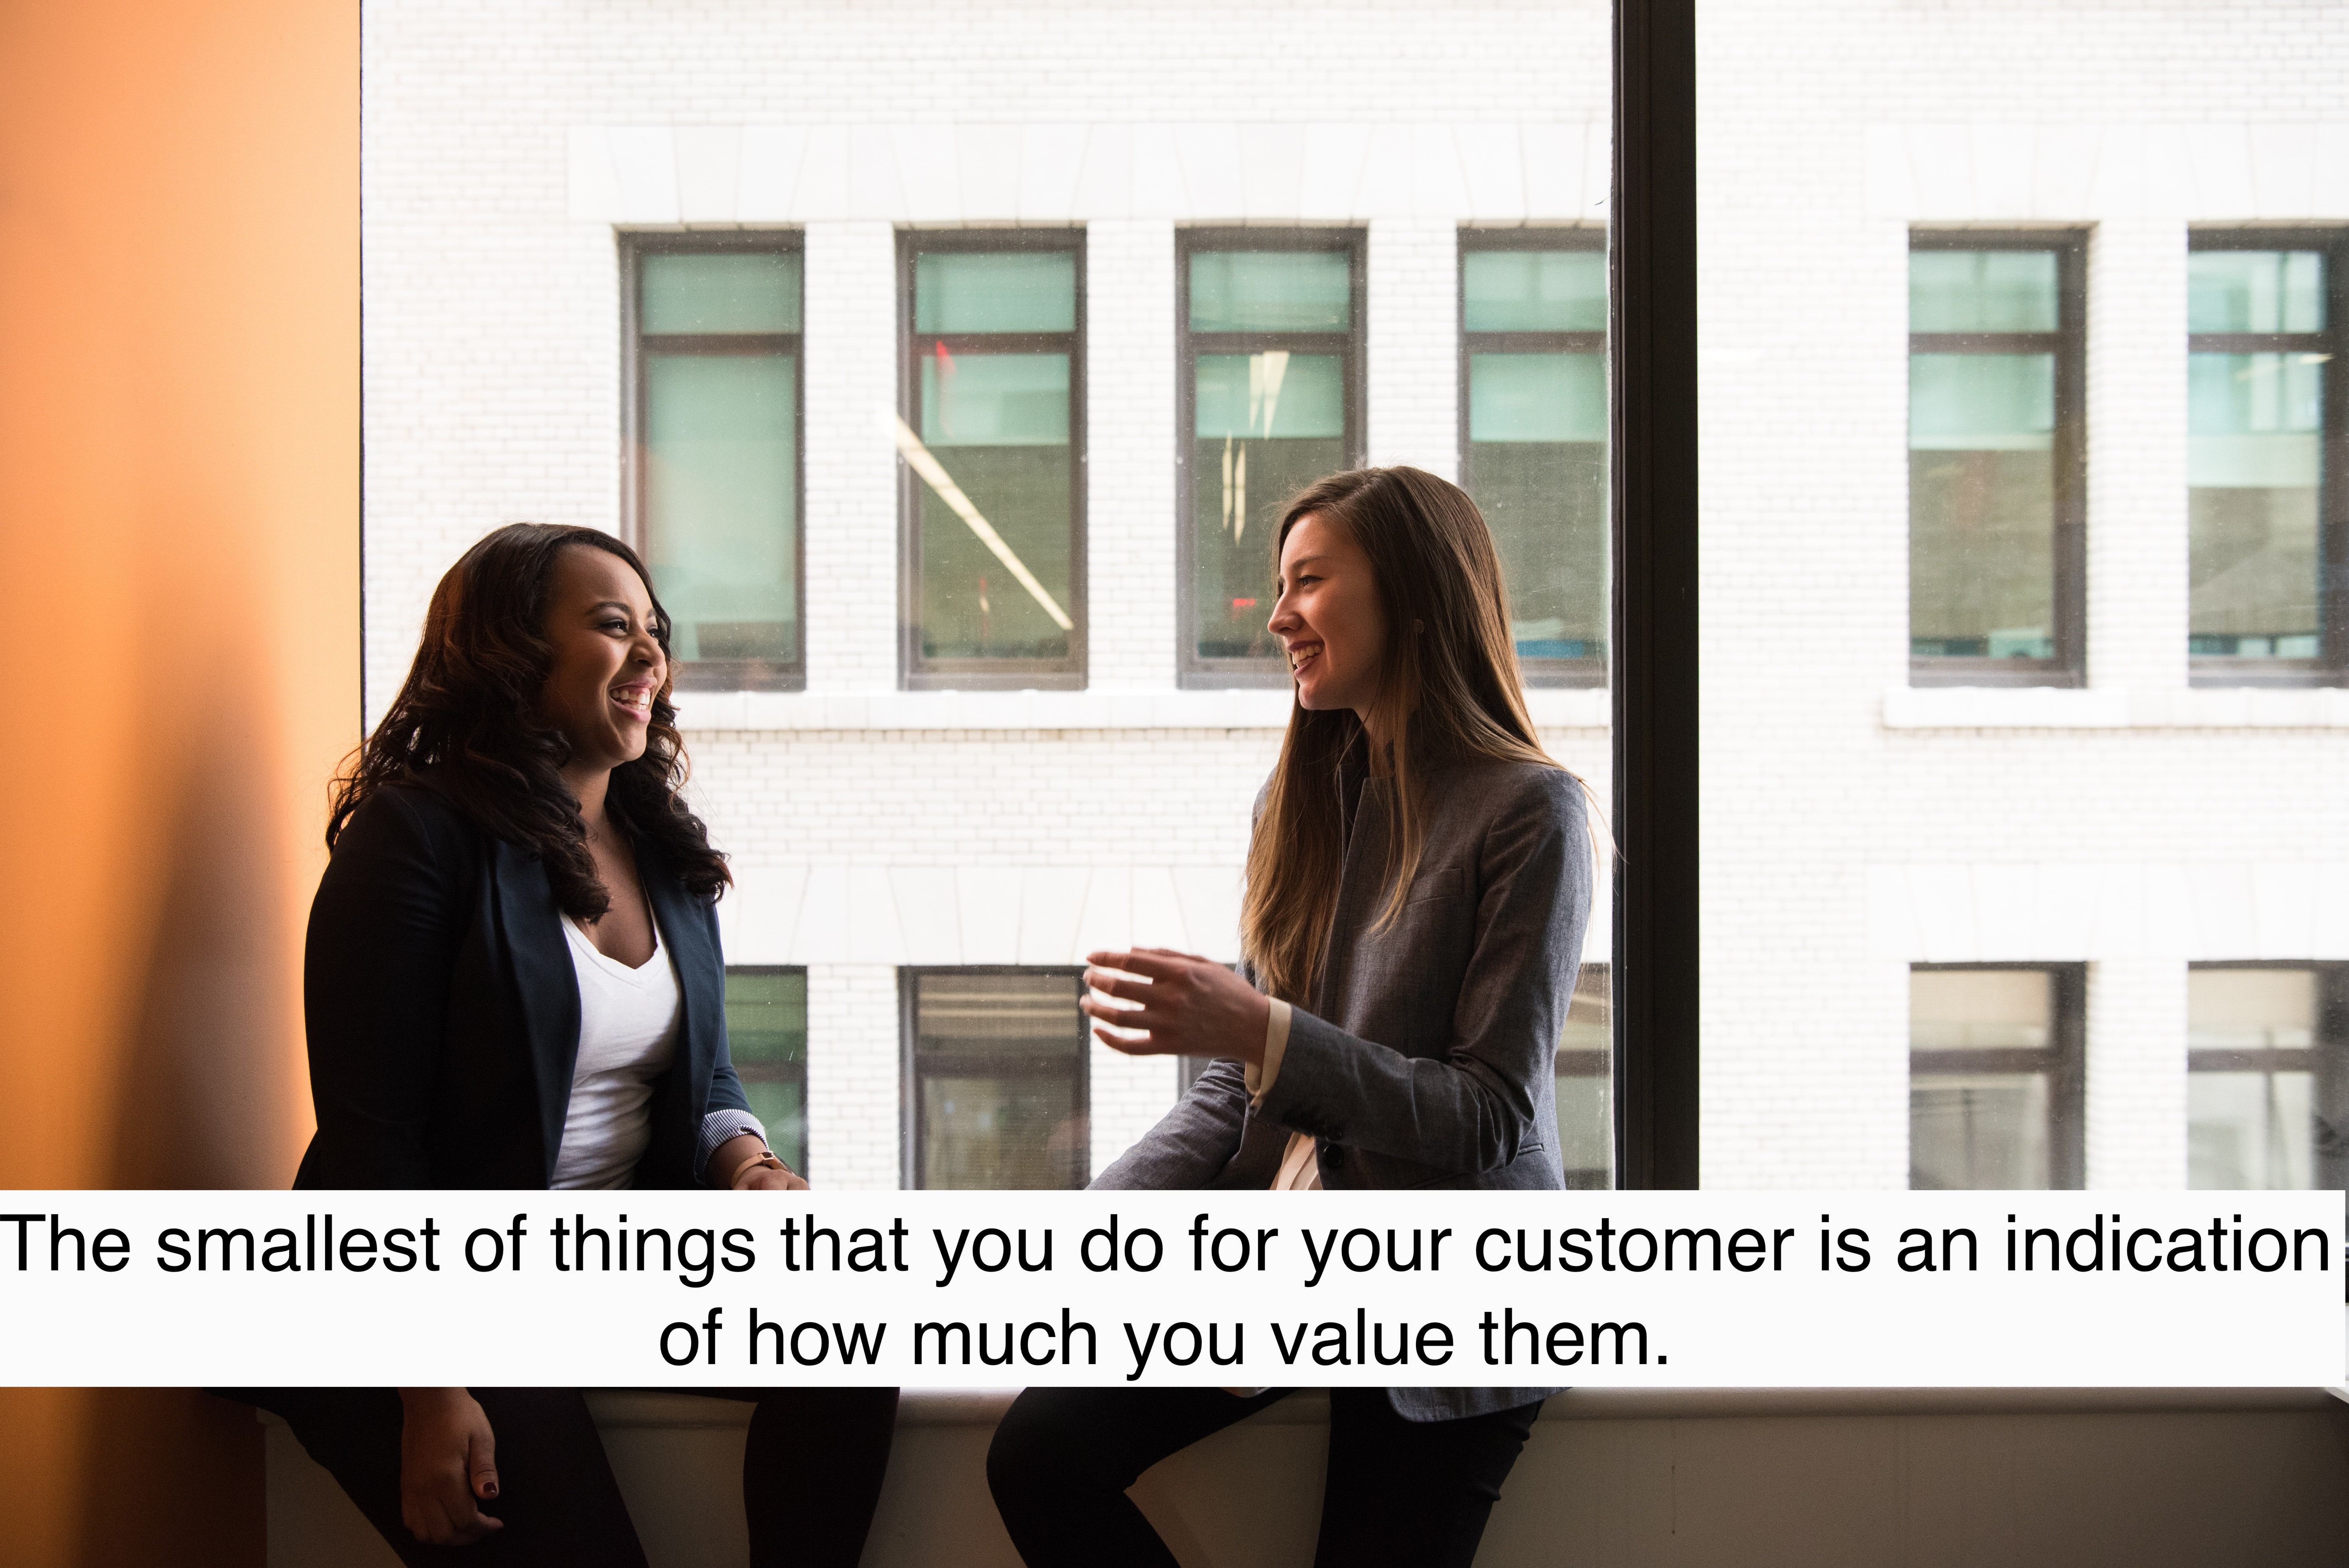 The smallest of things that you do for your customer is an indication of how much you value them.